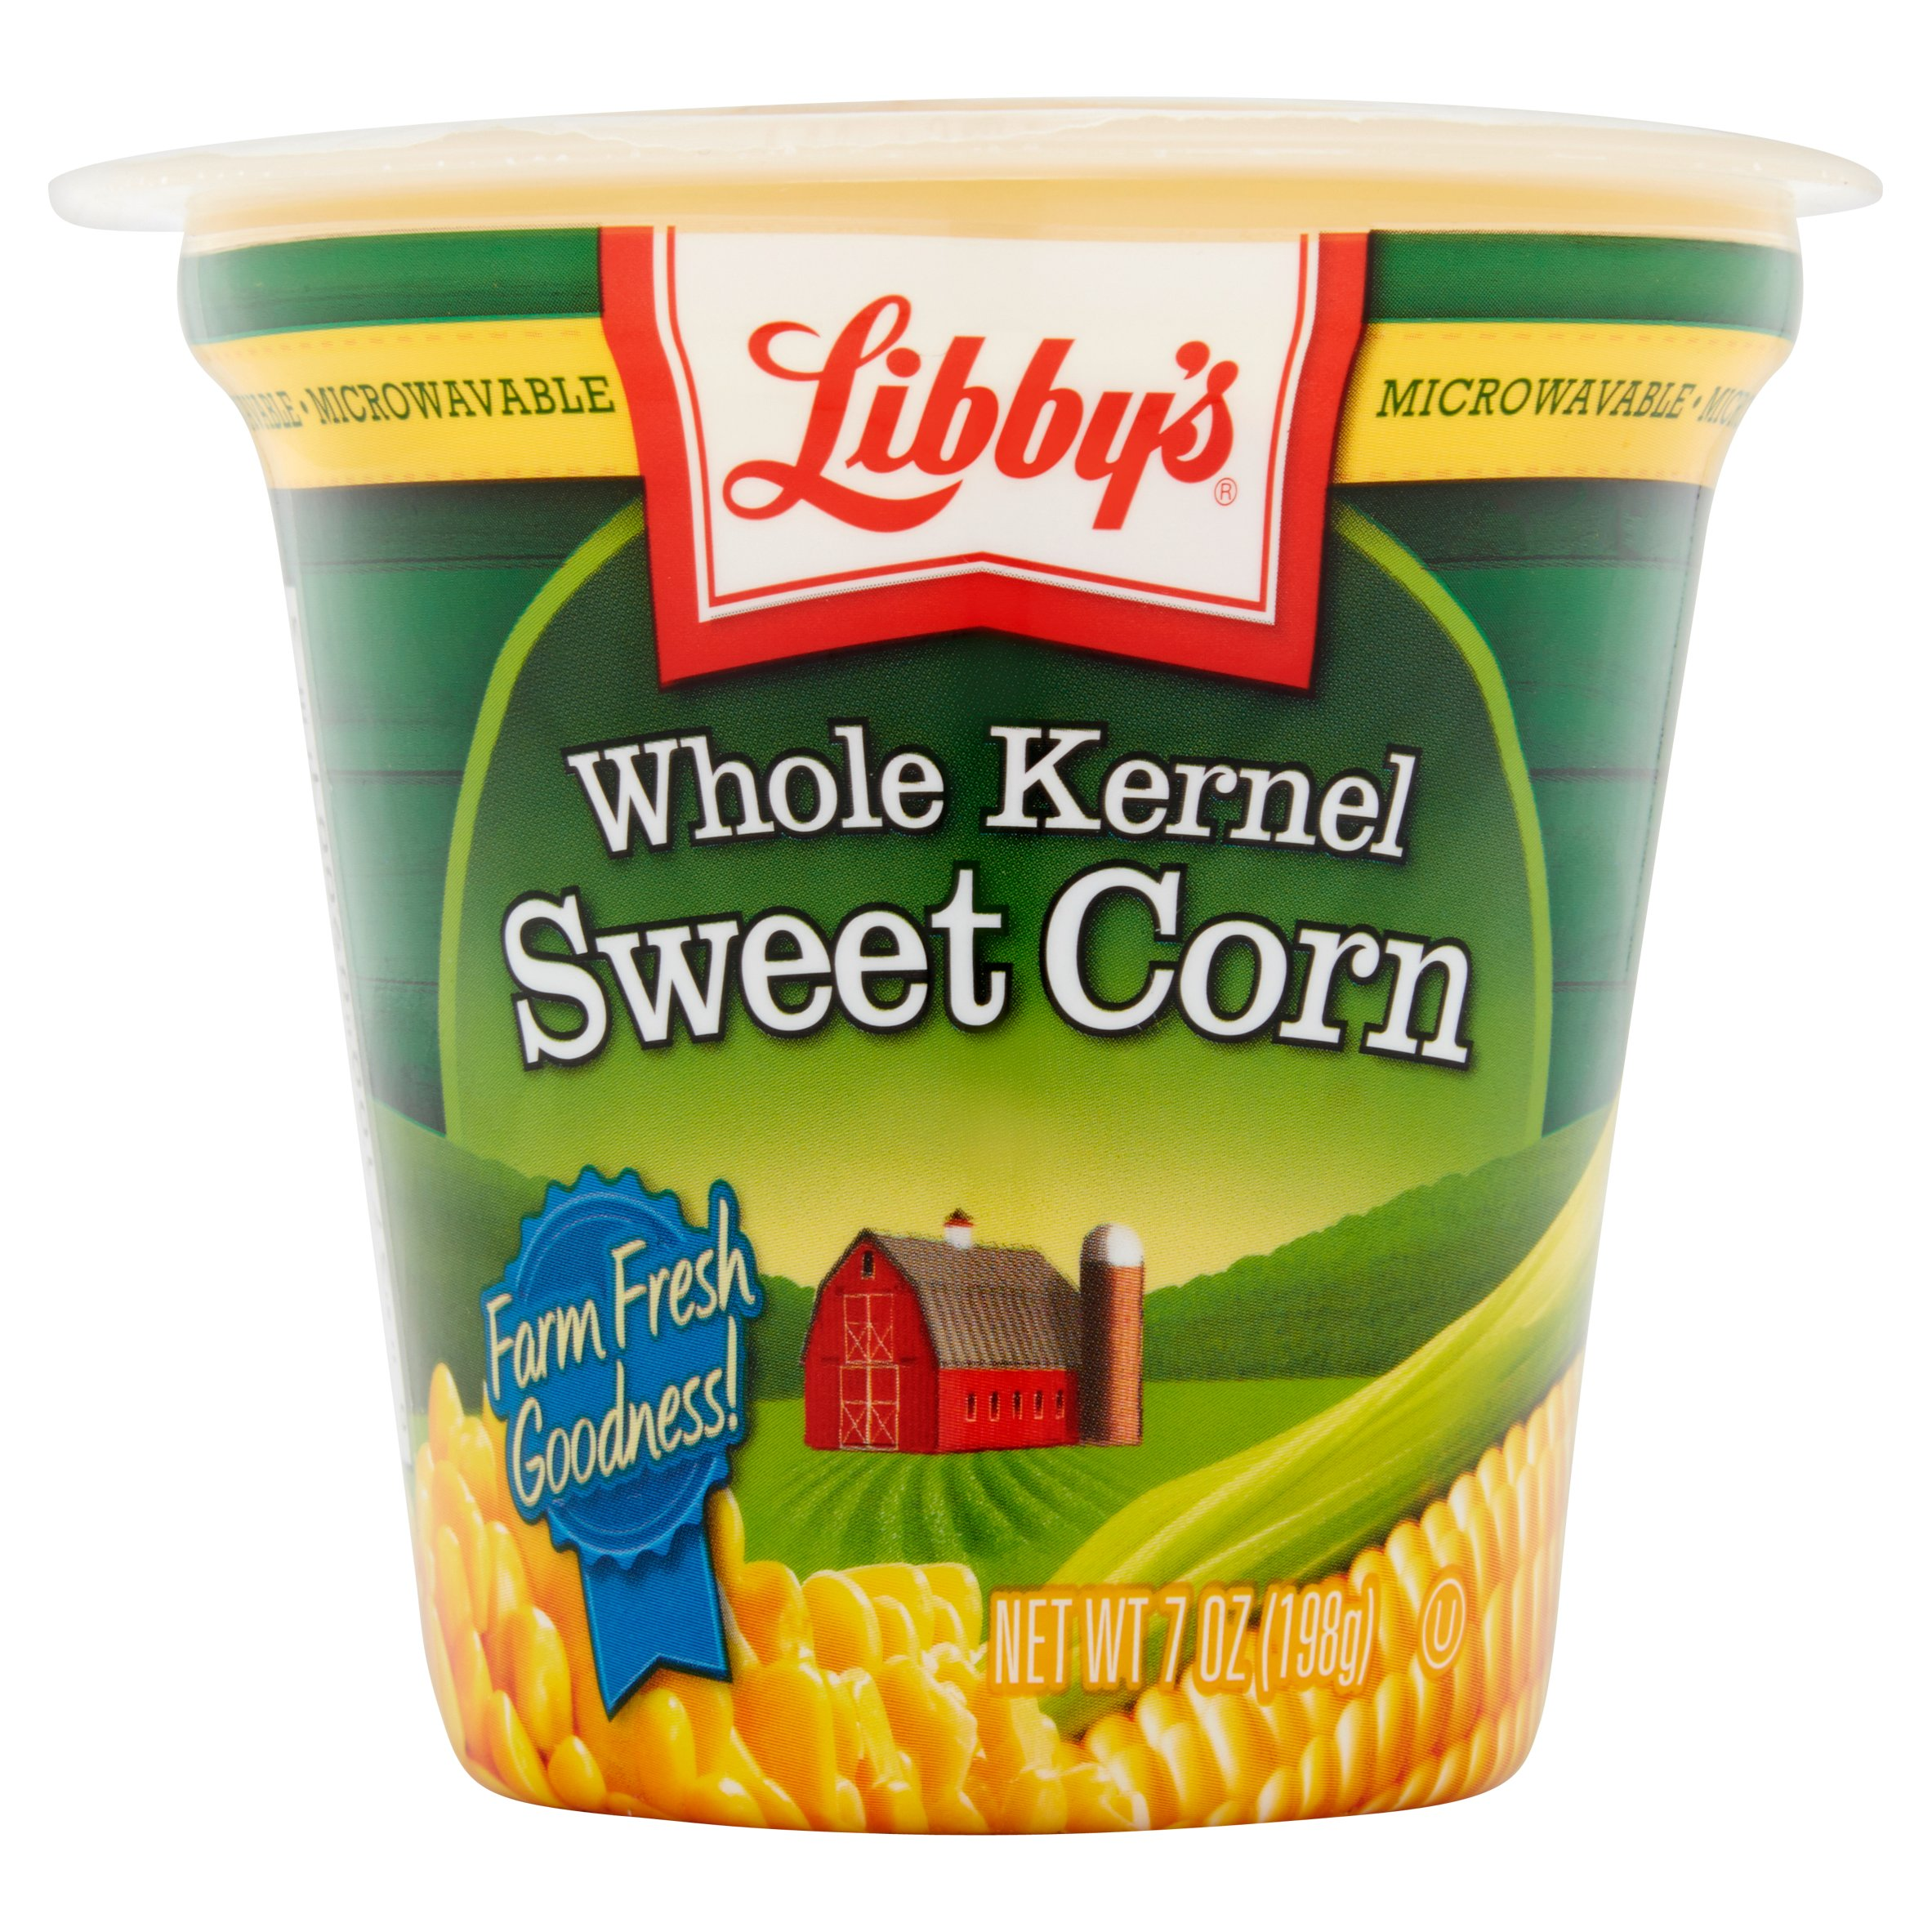 Libby's Whole Kernel Sweet Corn, 7 oz